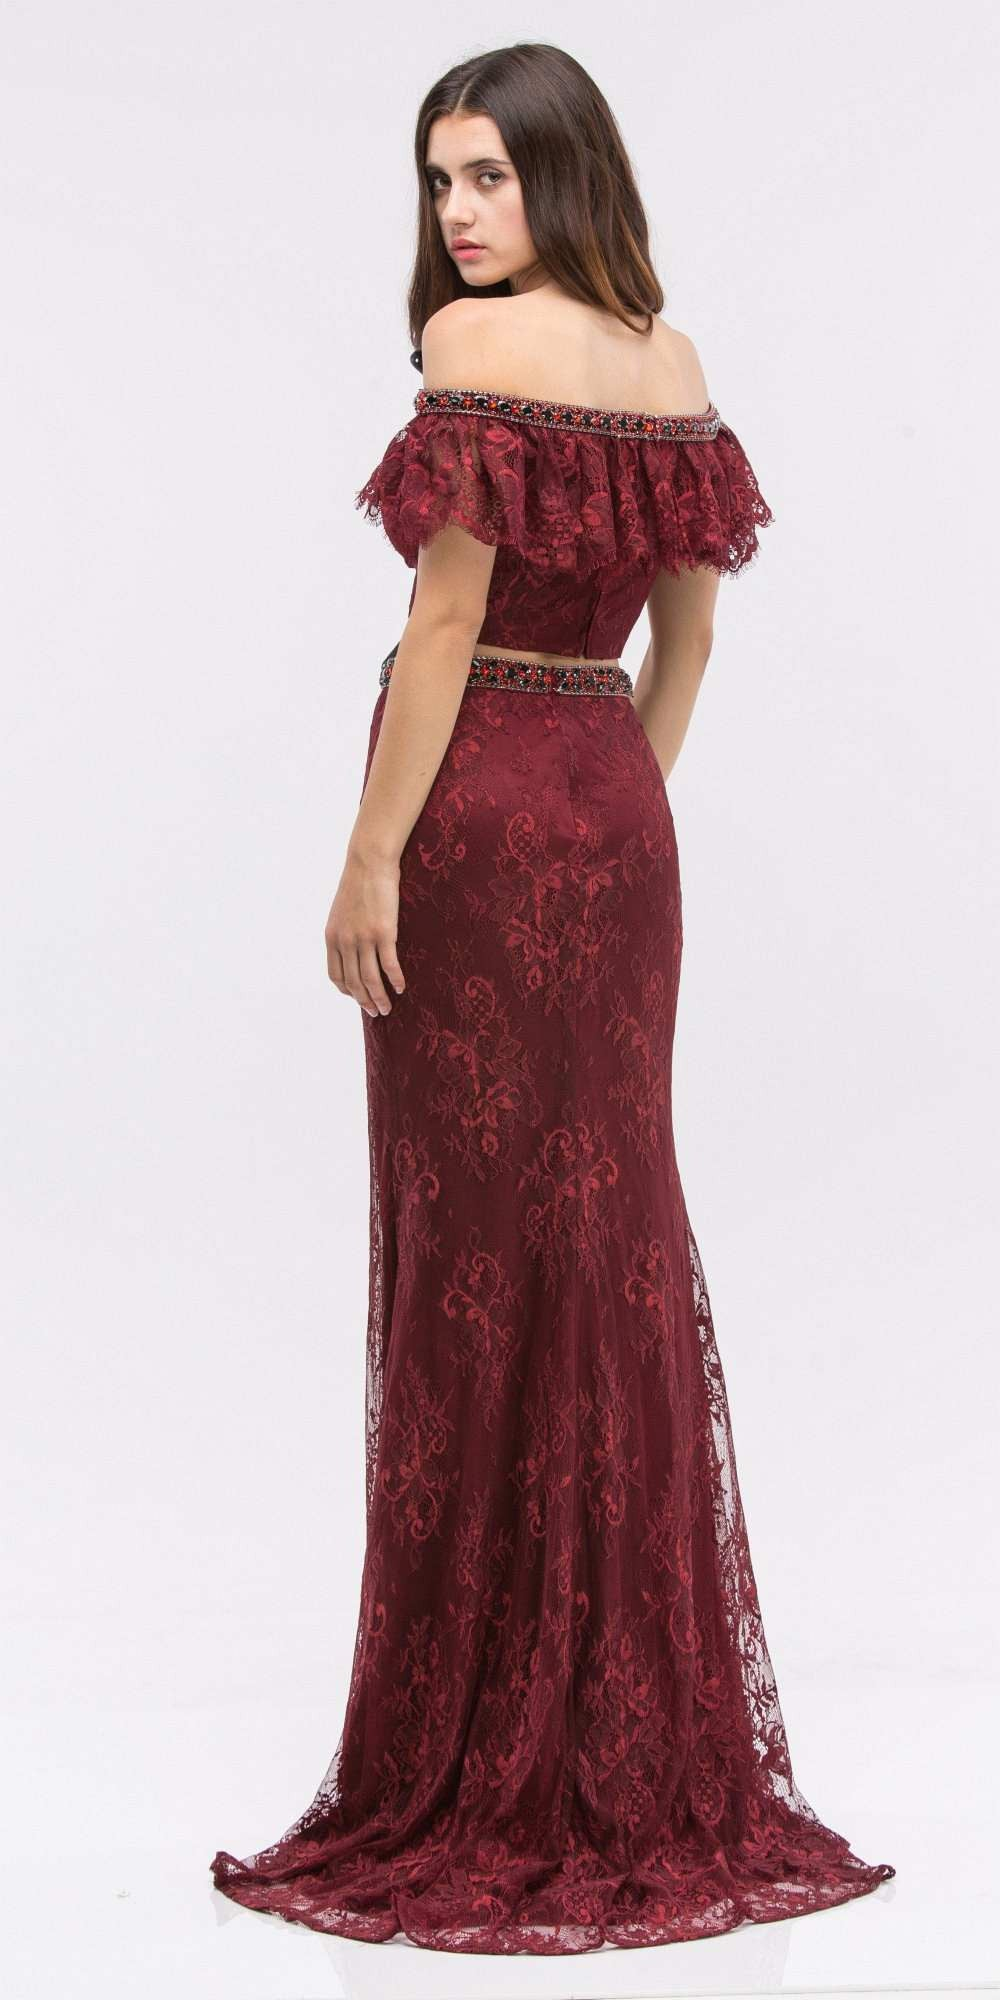 Off-Shoulder Two-Piece Beaded Lace Long Prom Dress Burgundy ...